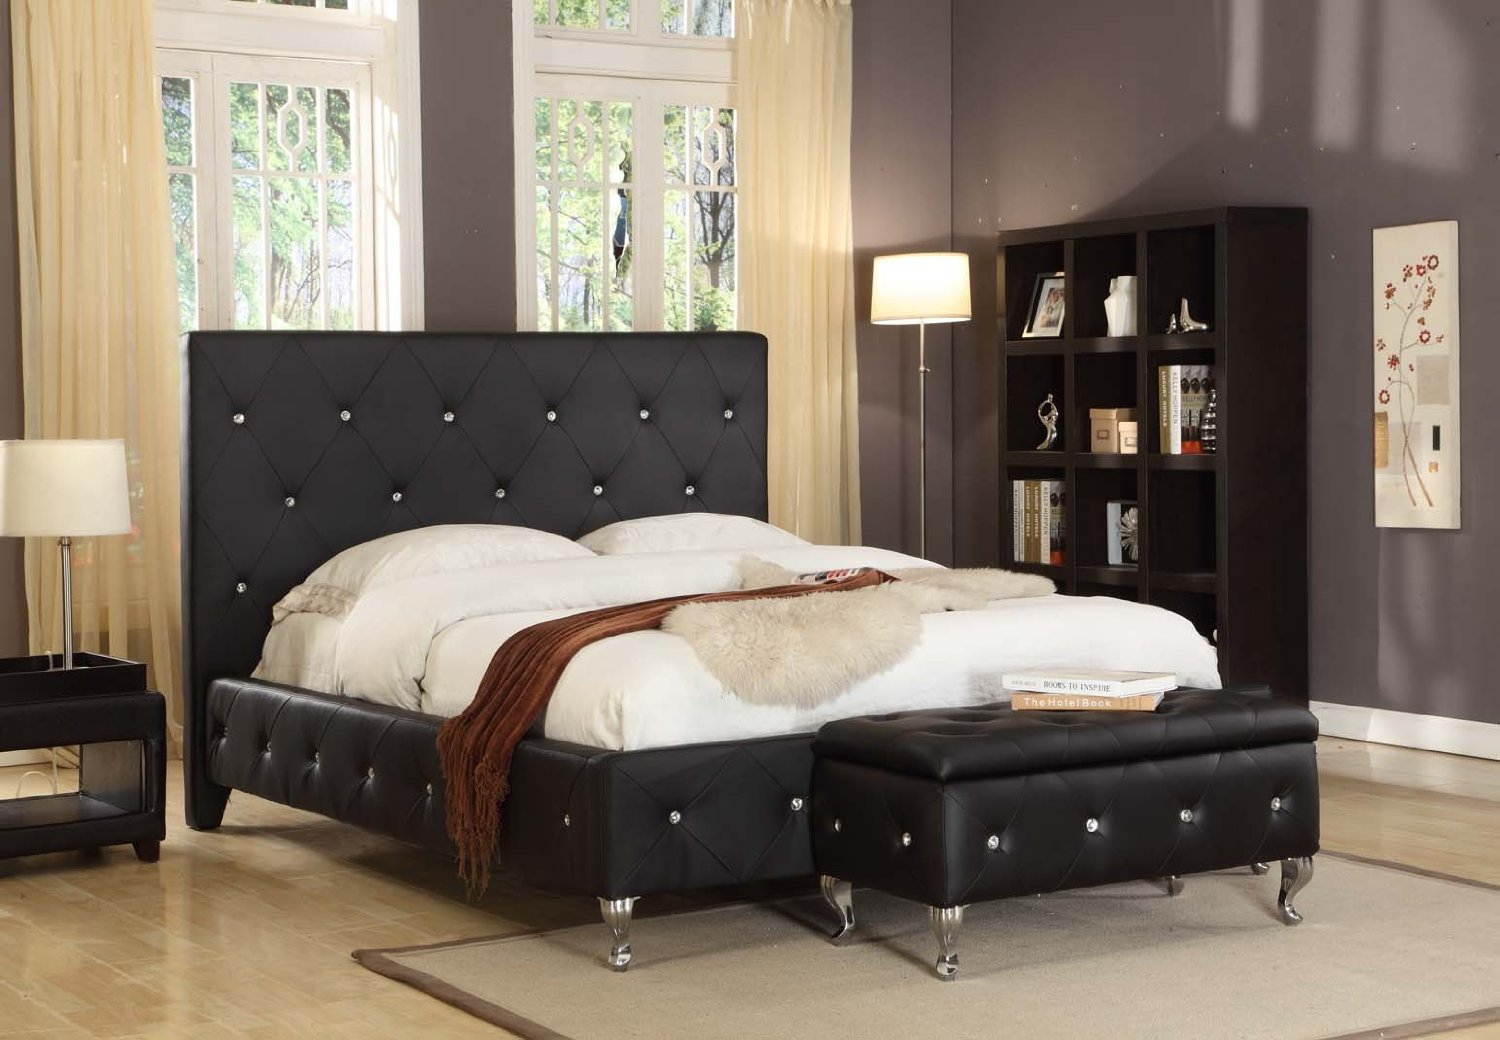 black leather bedroom furniture photo - 3